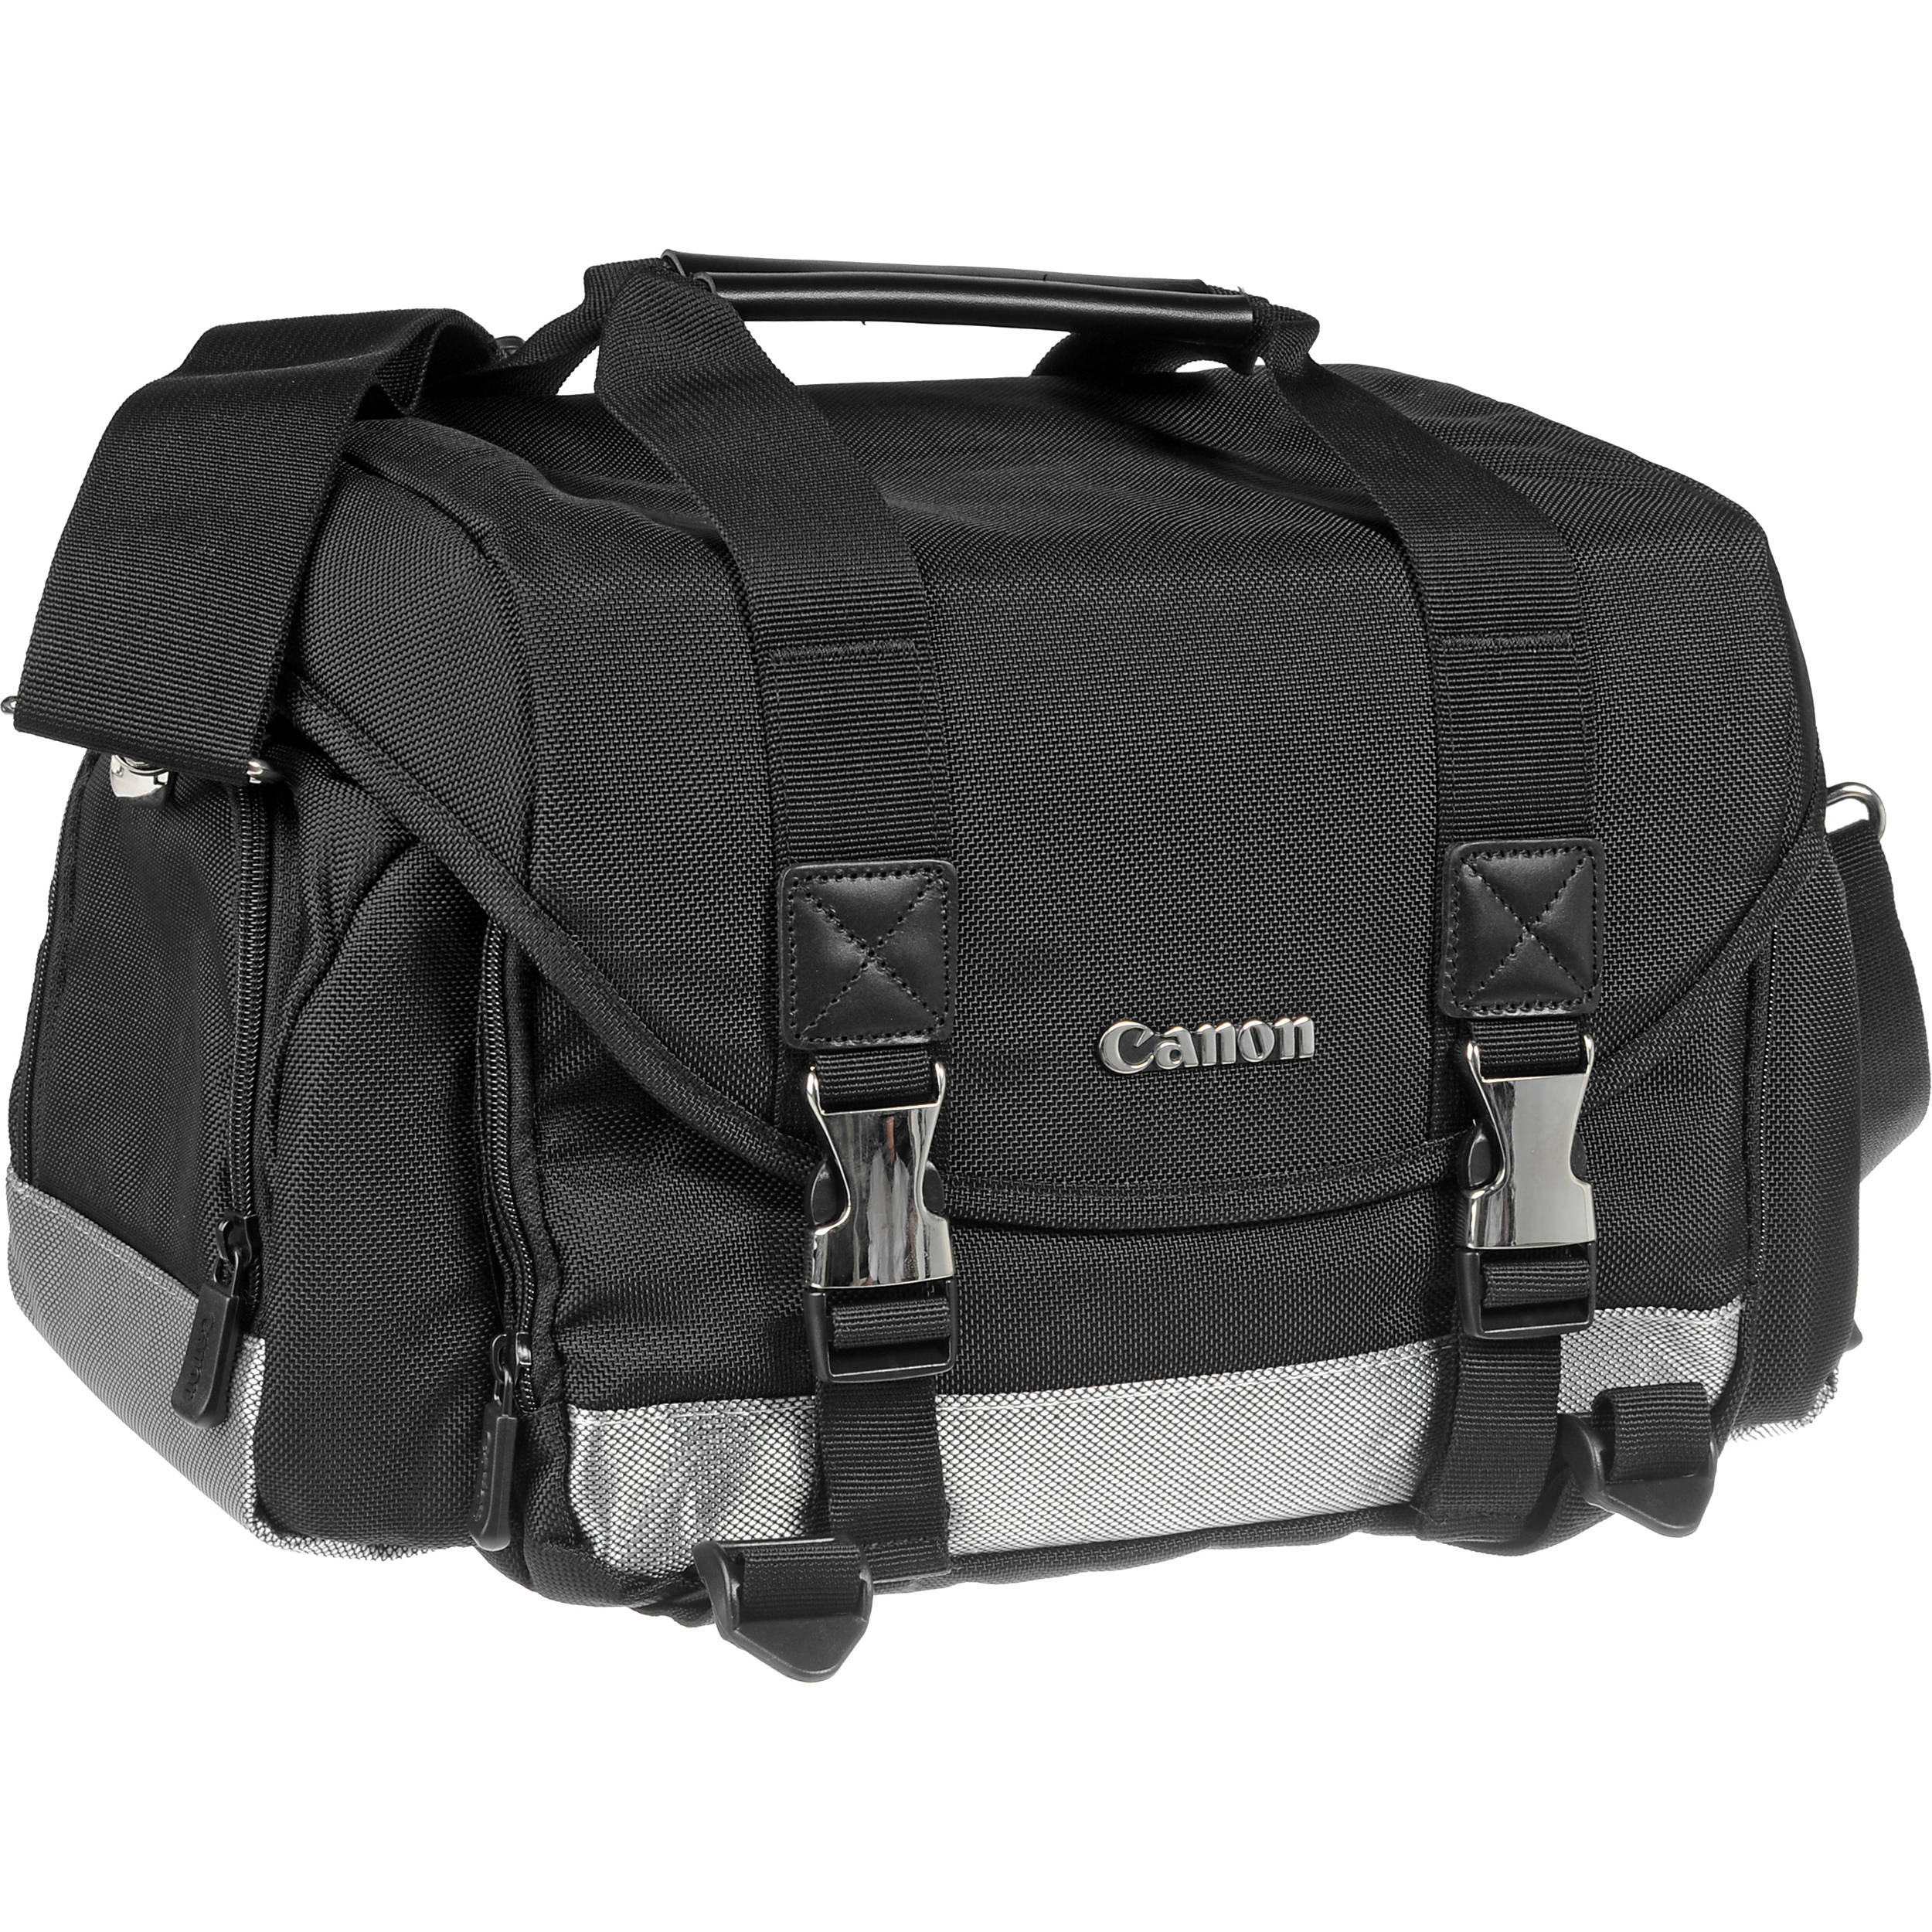 Canon 200DG Deluxe Gadget Bag 9320A003 B&H Photo Video